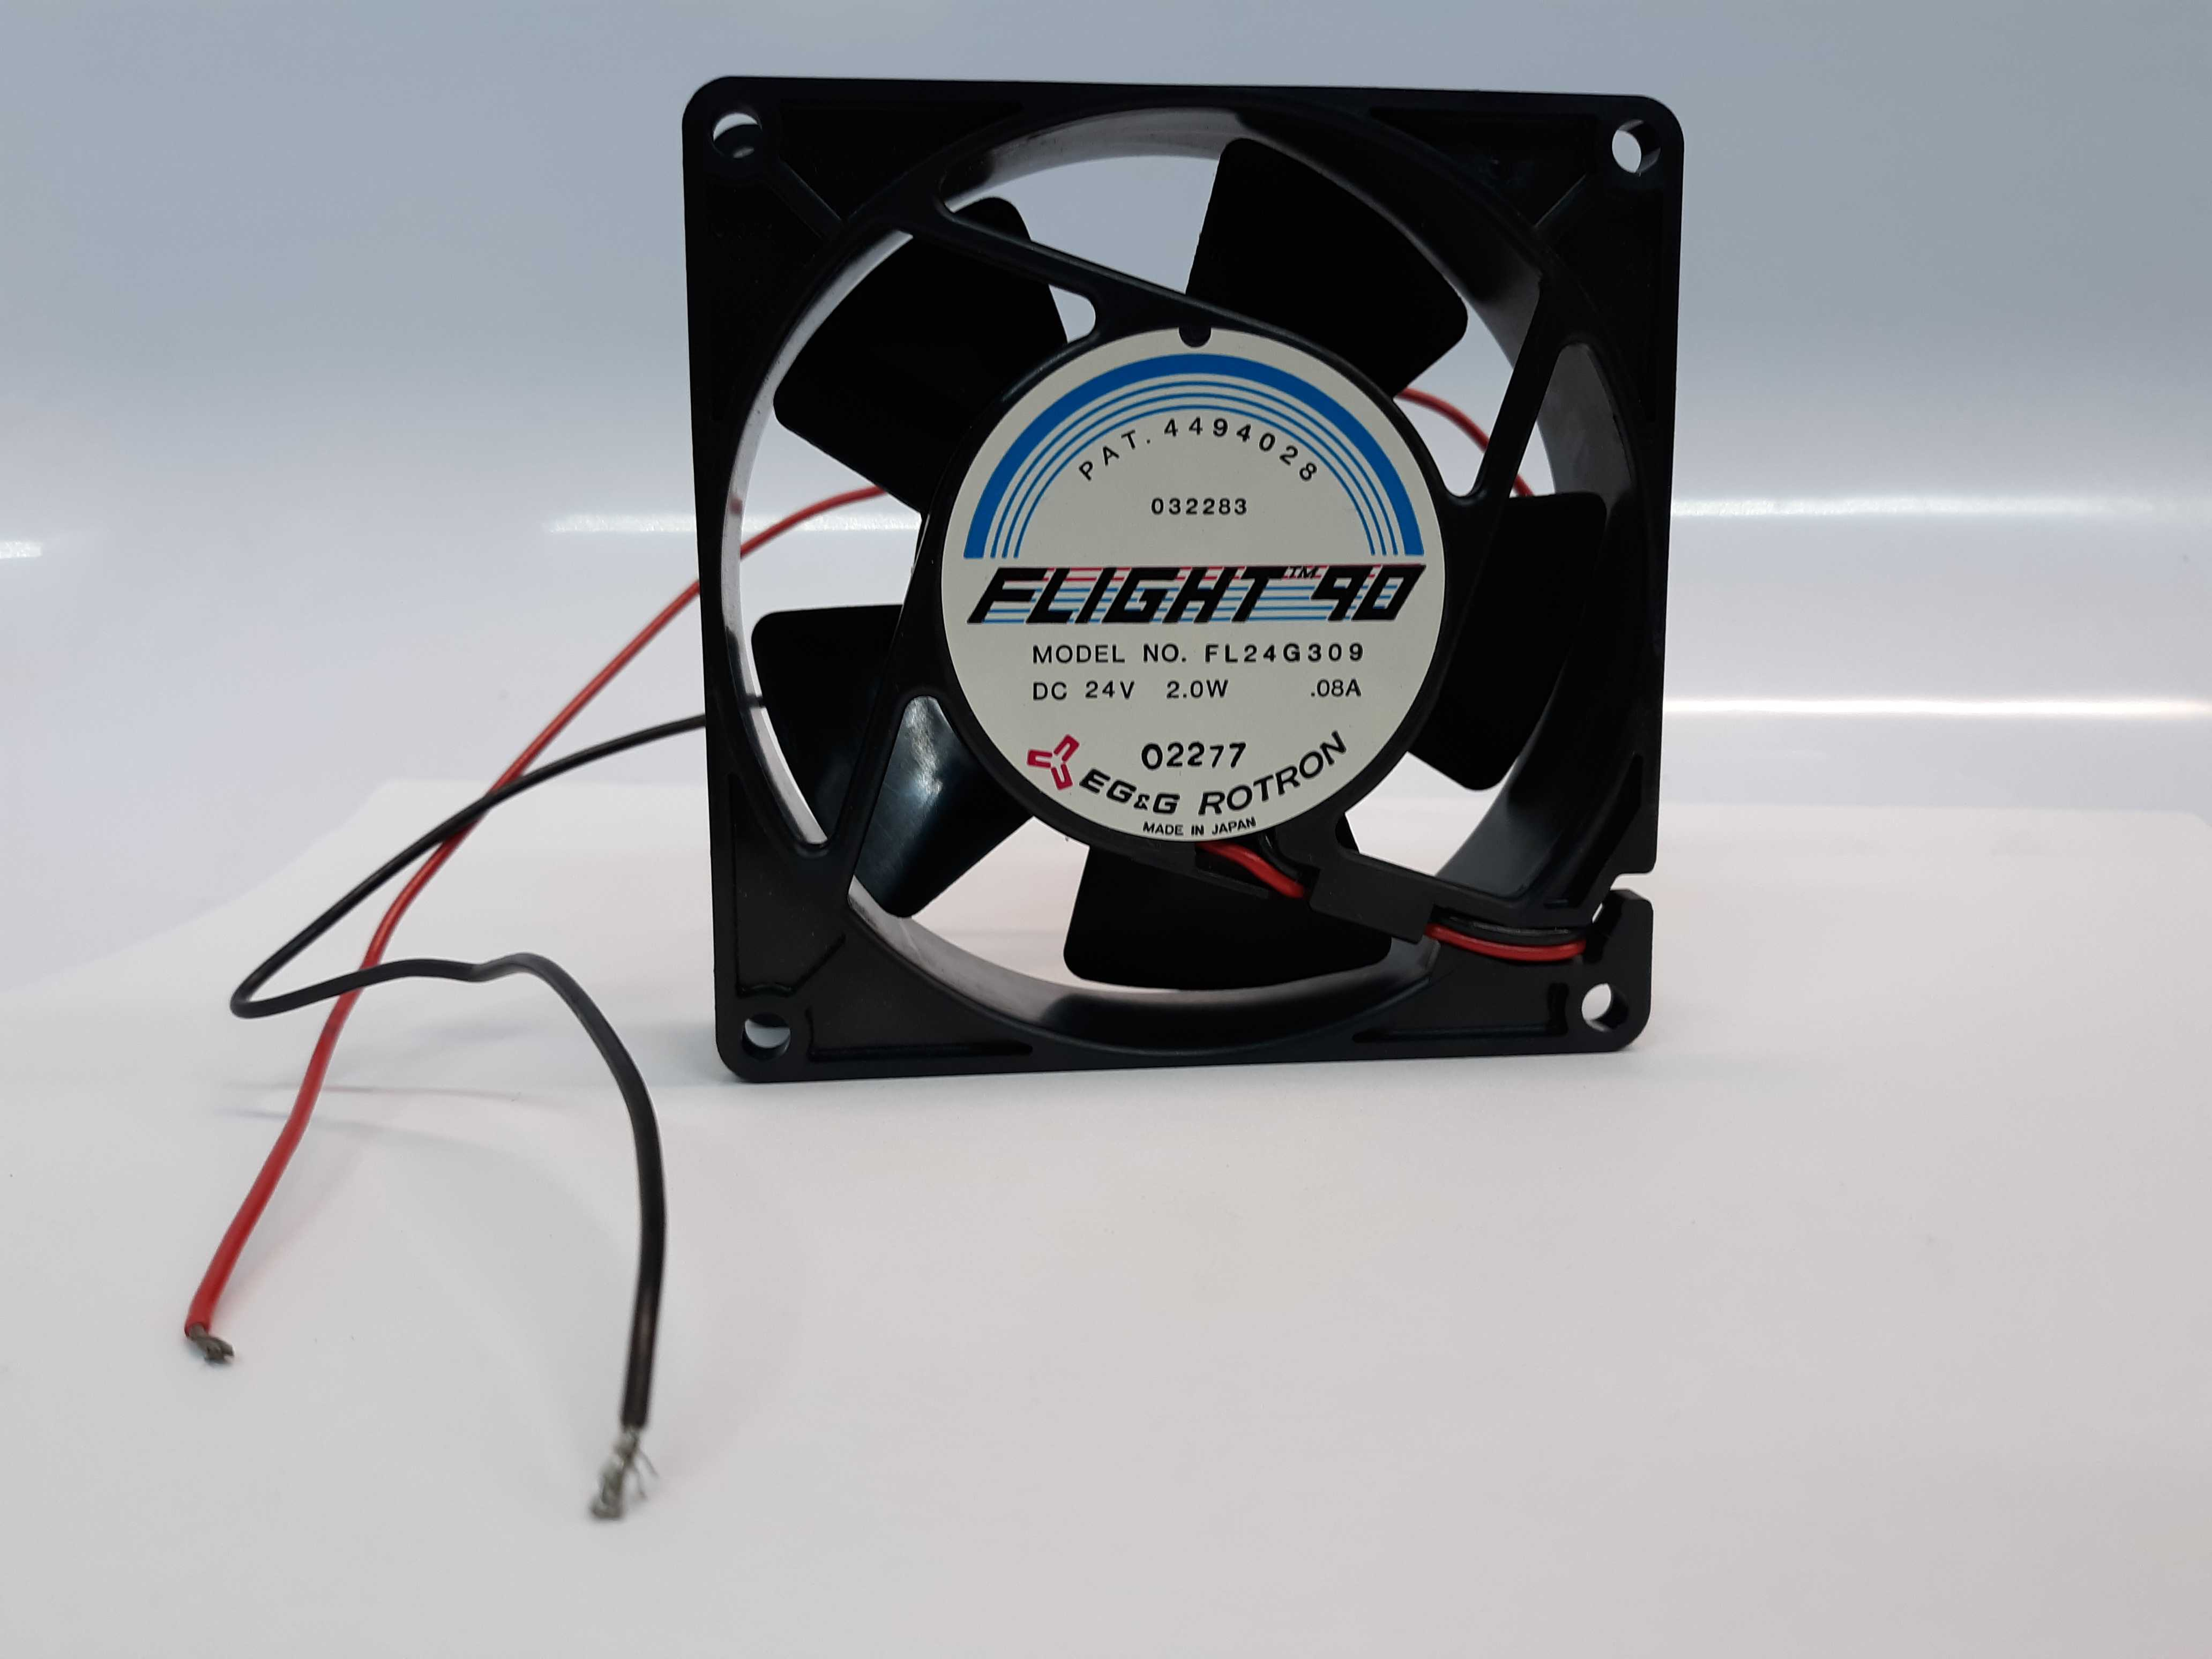 EG&G Rotron Flight 90 FL24G309 Fan 24V Lot of 2